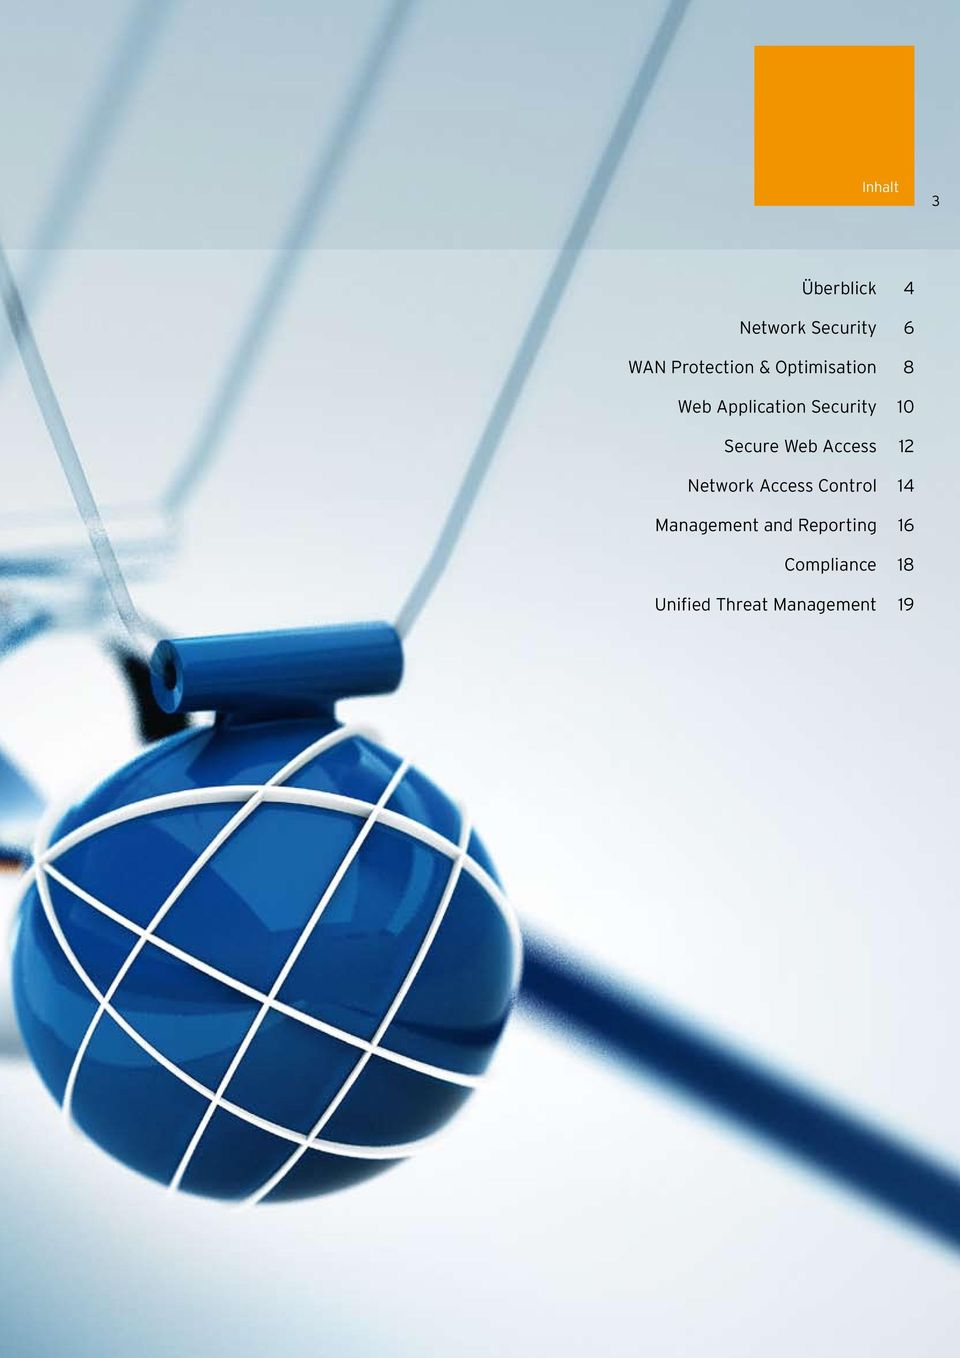 Web Access 12 Network Access Control 14 Management and